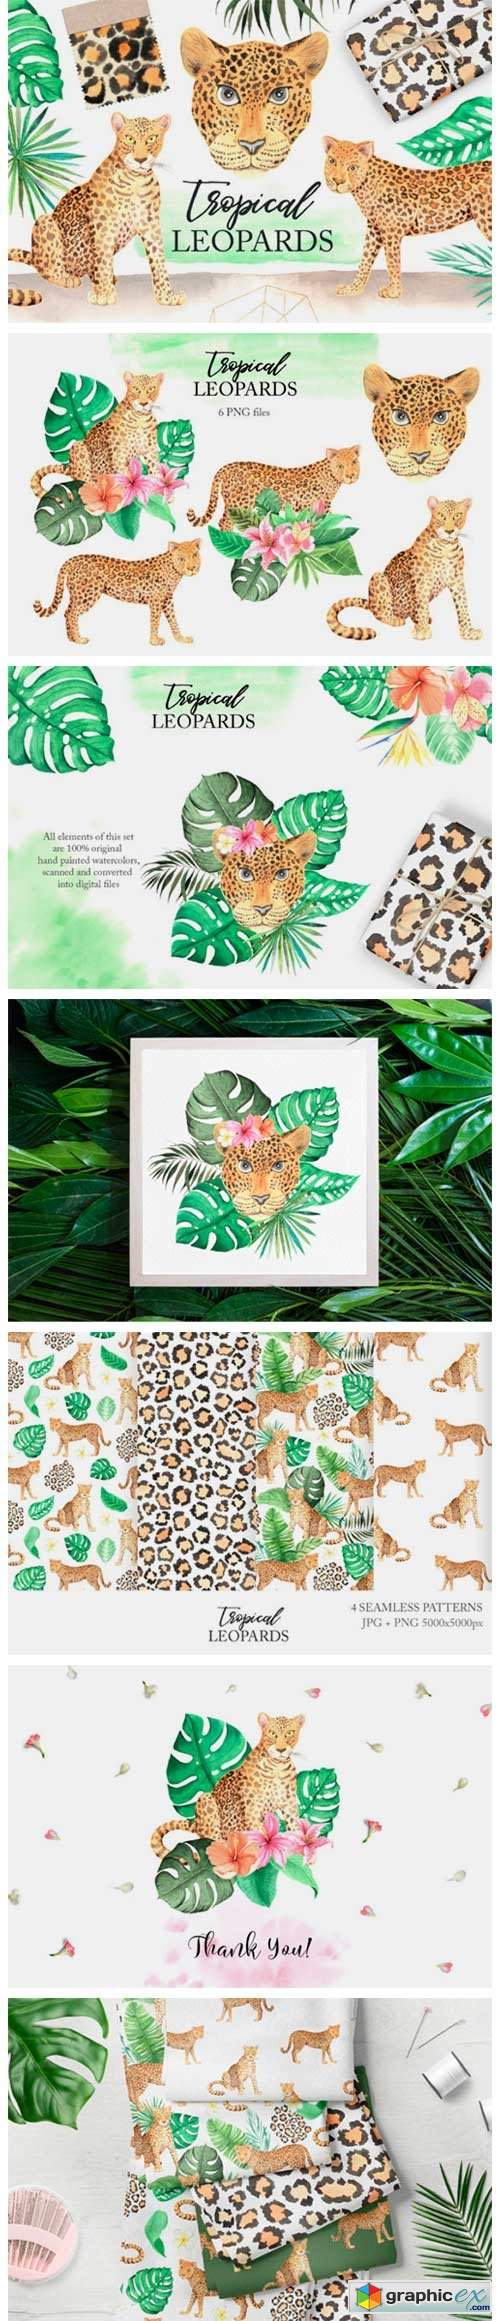 Watercolor Leopards in the Jungle